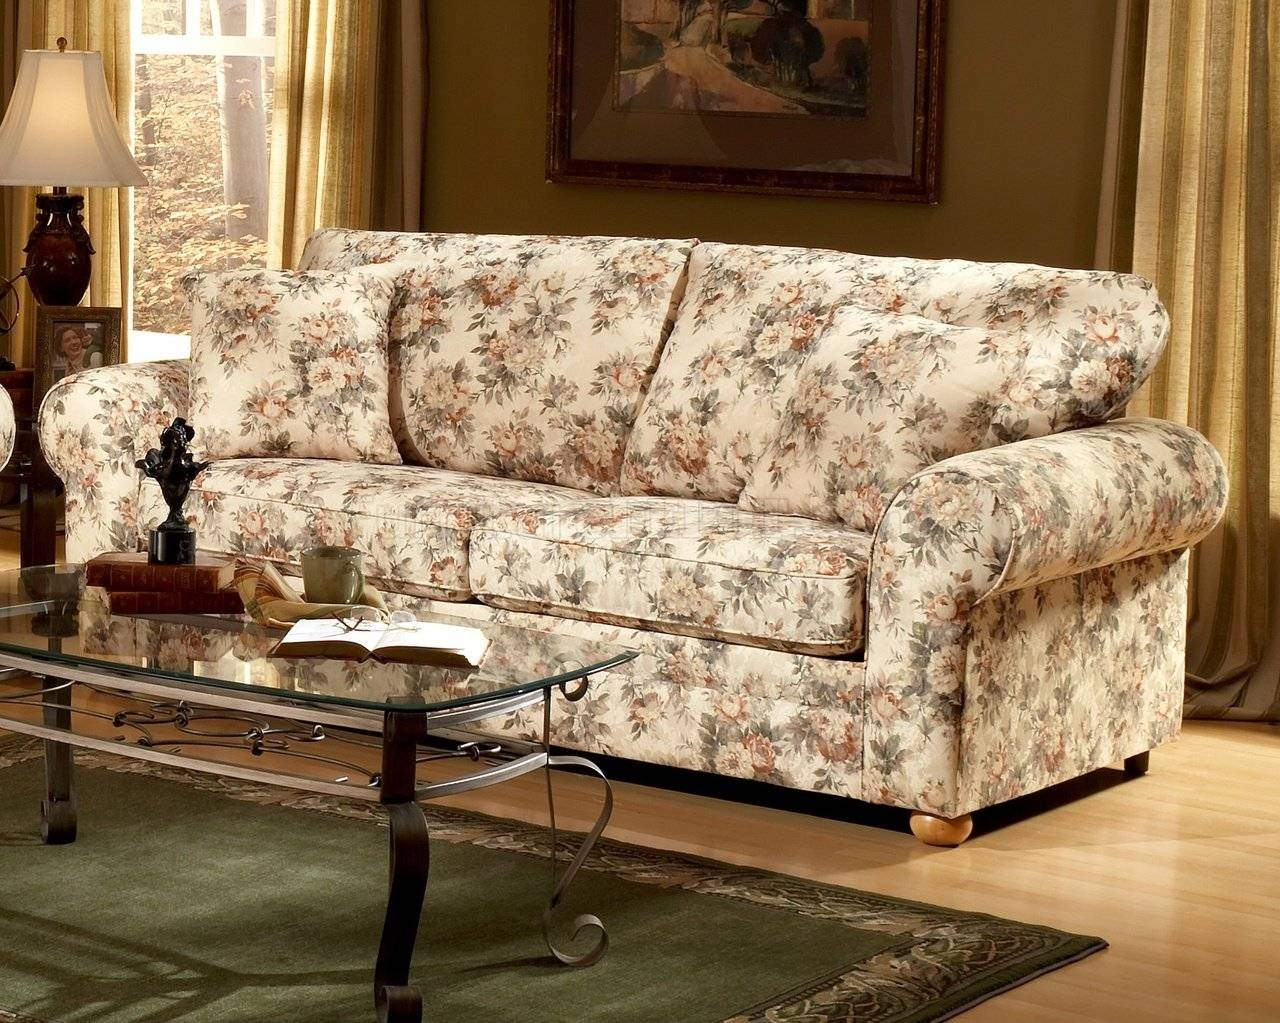 38 Patterned Sofa, Sofa Slips Plus Slipcovered Couches Slip pertaining to Chintz Floral Sofas (Image 3 of 30)